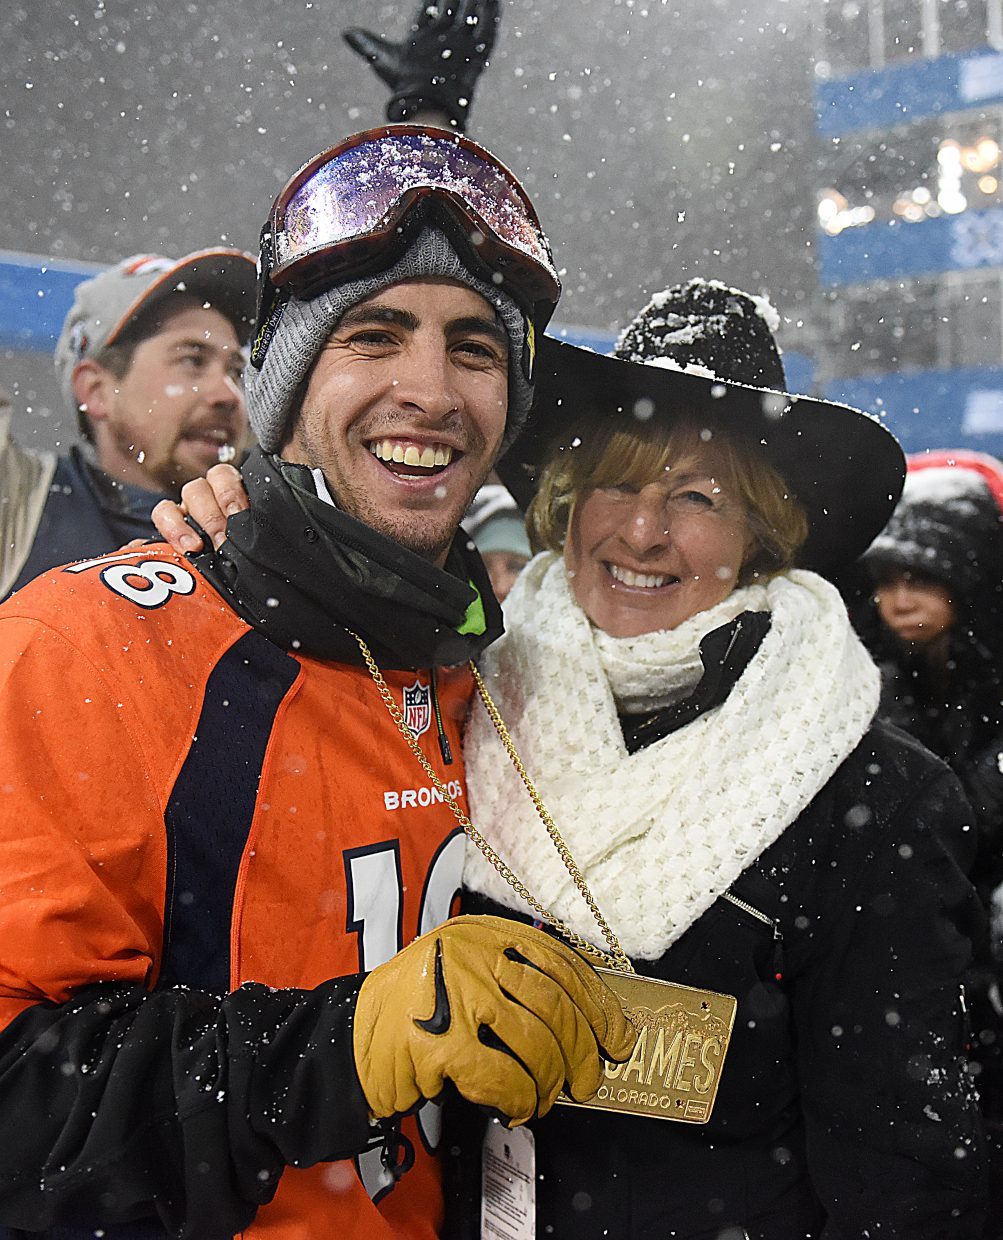 Steamboat Springs' Matt Ladley shares a moment with his mother, Ellen Ladley, after winning gold at the X Games on Saturday.